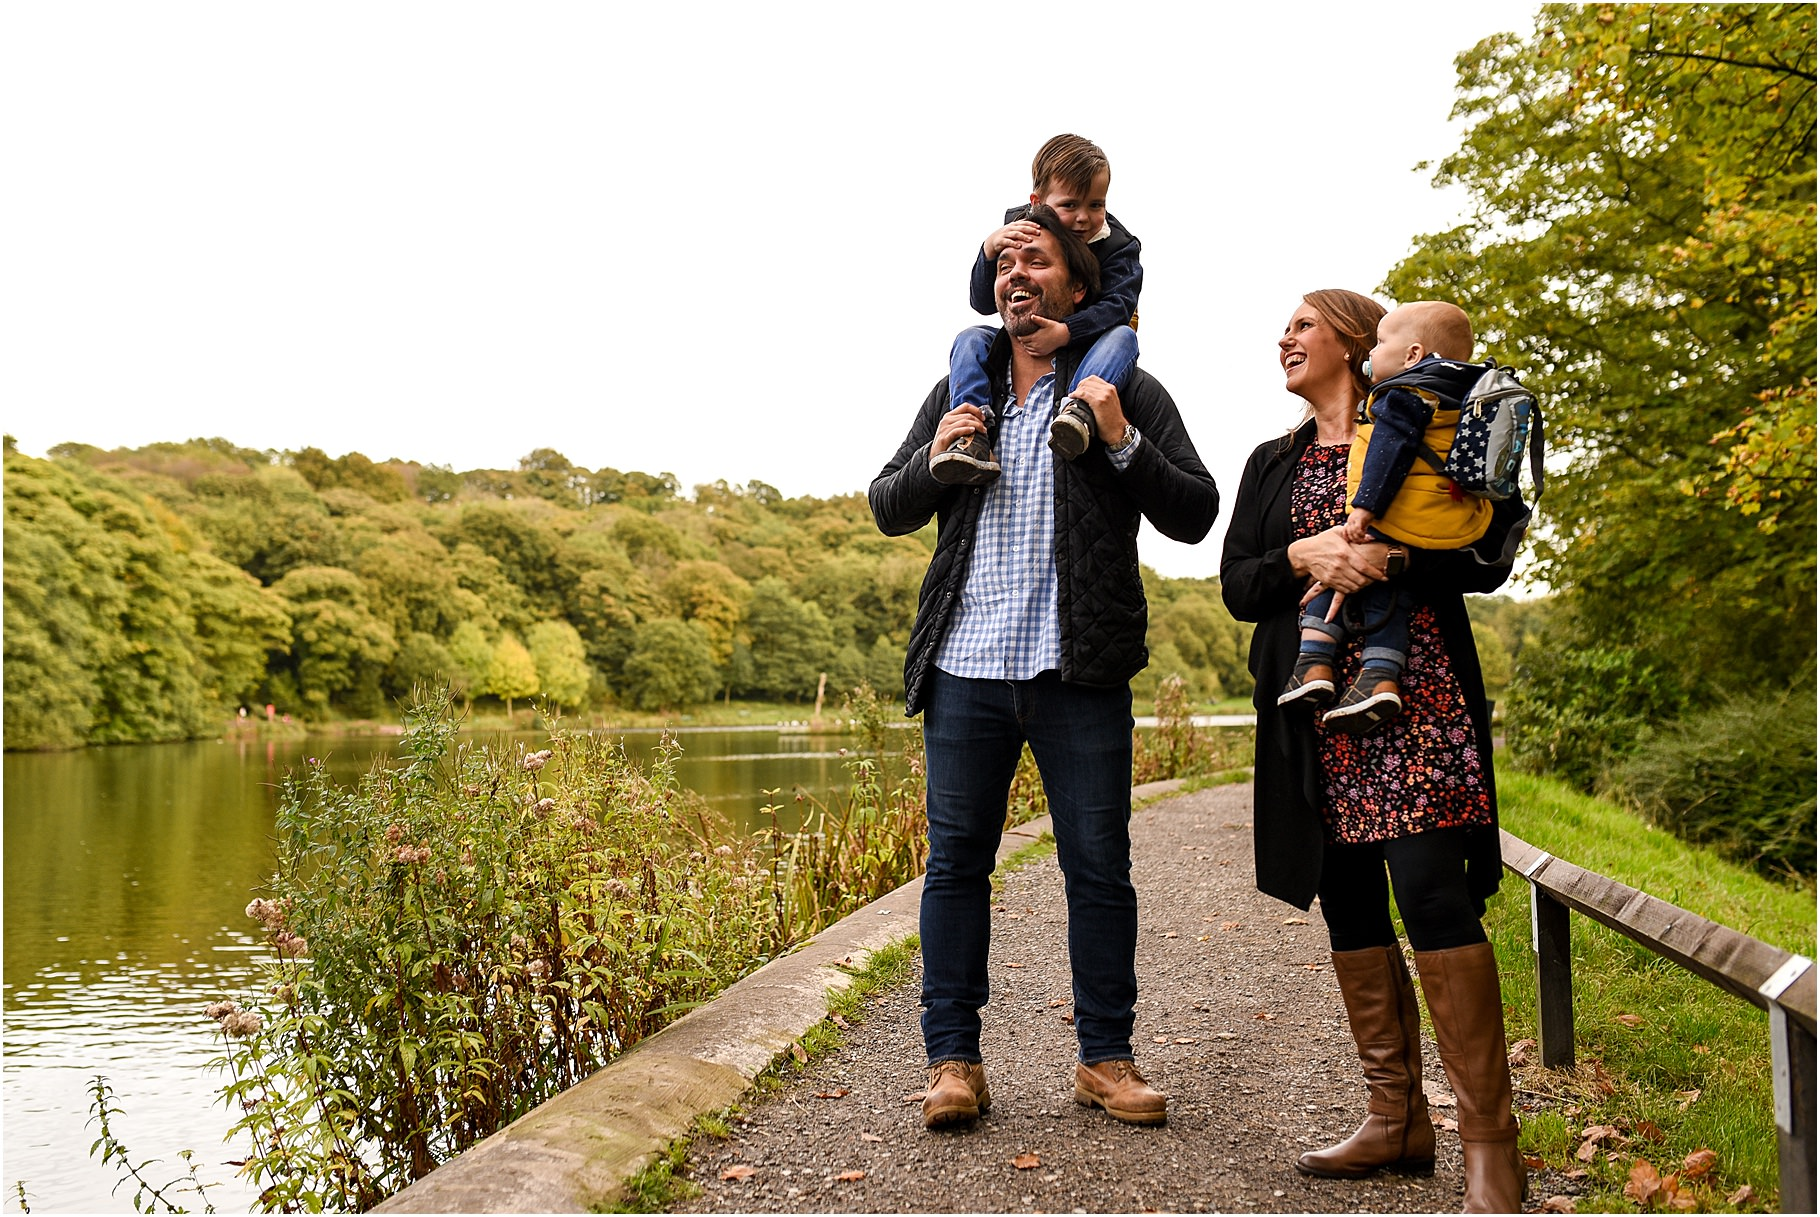 yarrow-valley-country-park-family-shoot - 35.jpg